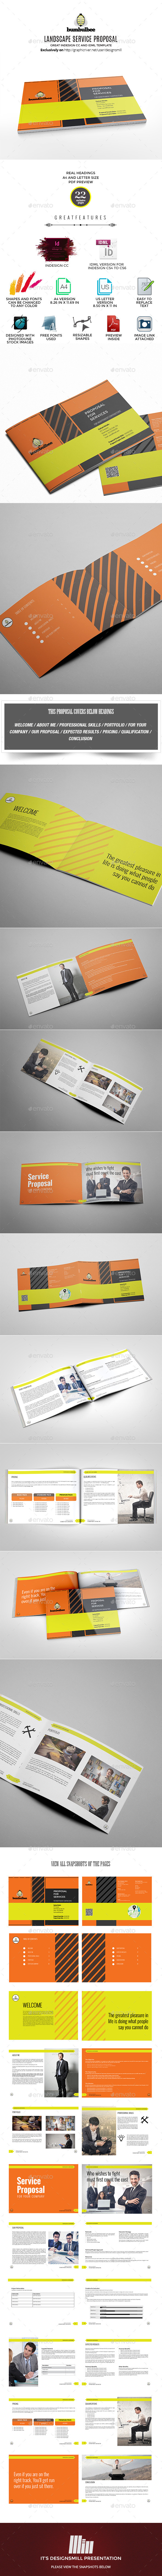 Landscape Service Proposal Template - Proposals & Invoices Stationery